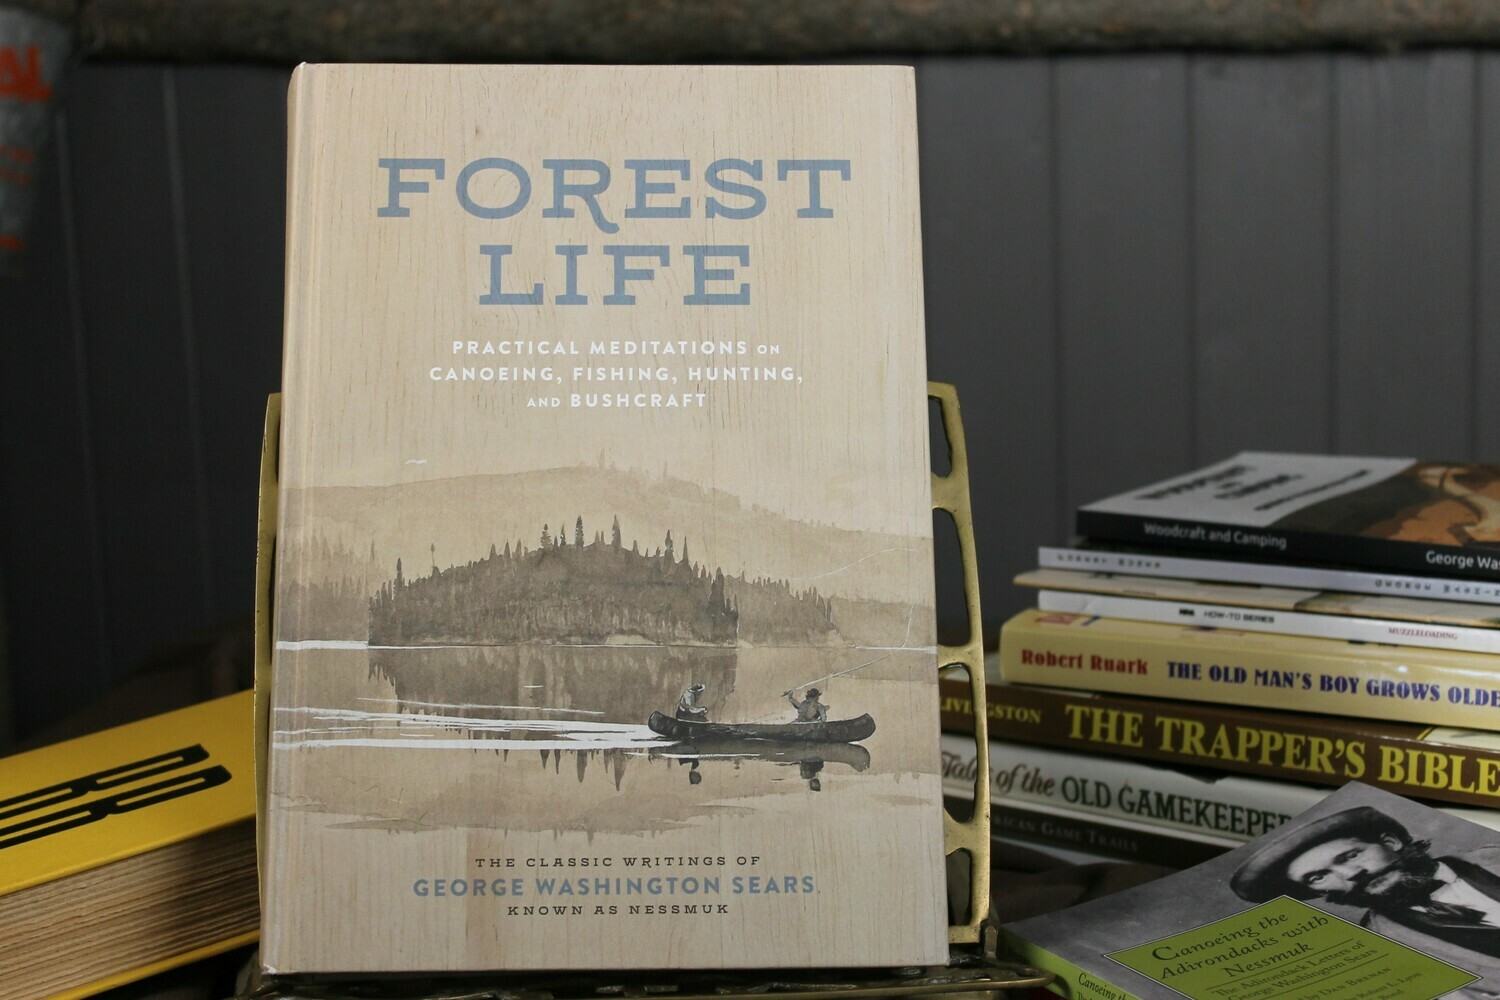 Forest Life by George Washington Sears